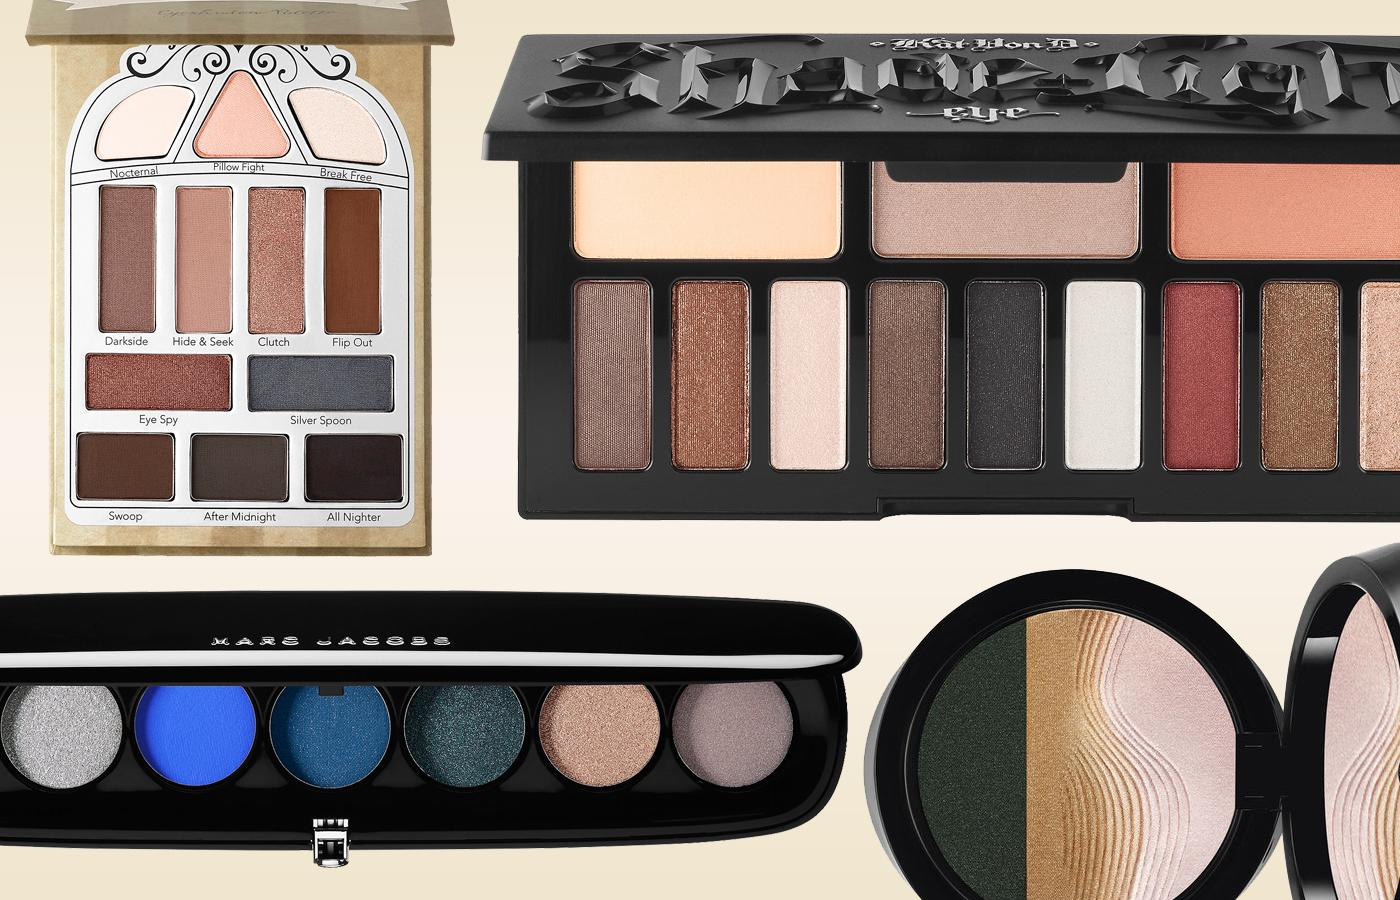 9 New Eyeshadow Palettes To Get You Out Of Your Summer